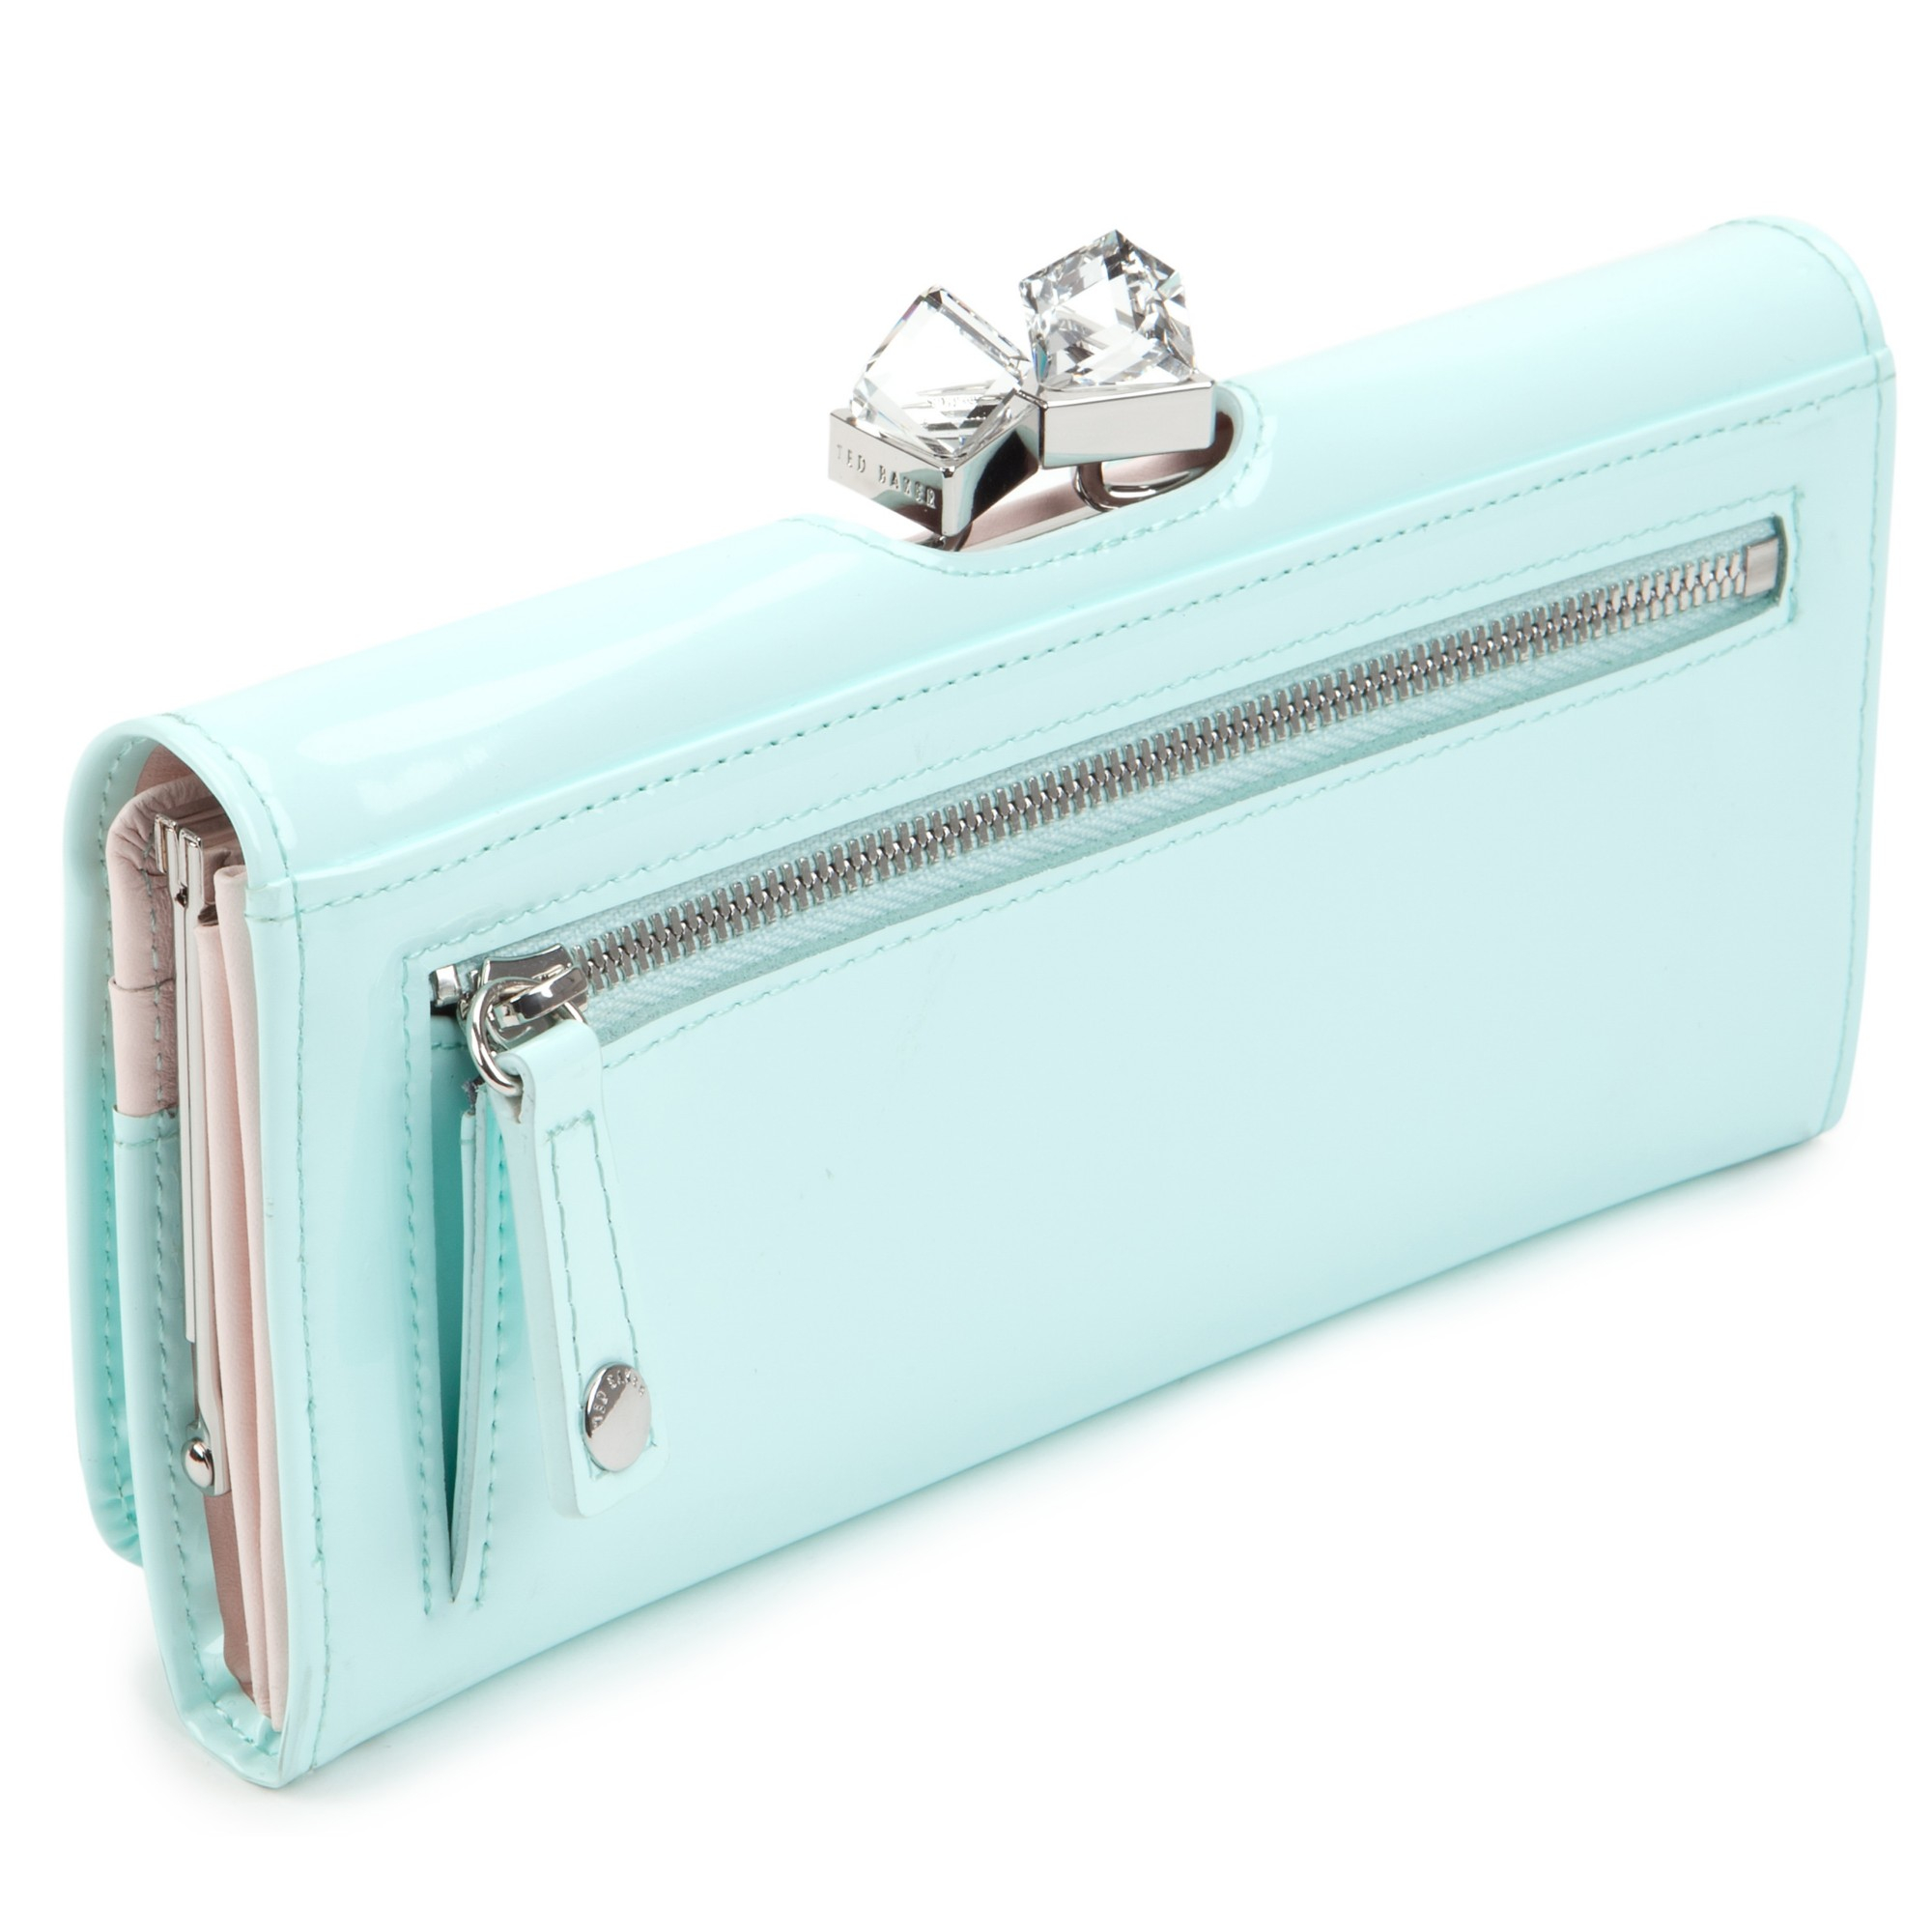 863ef49810236 Ted Baker Missti Patent Leather Crystal Frame Matinee Purse in Blue ...